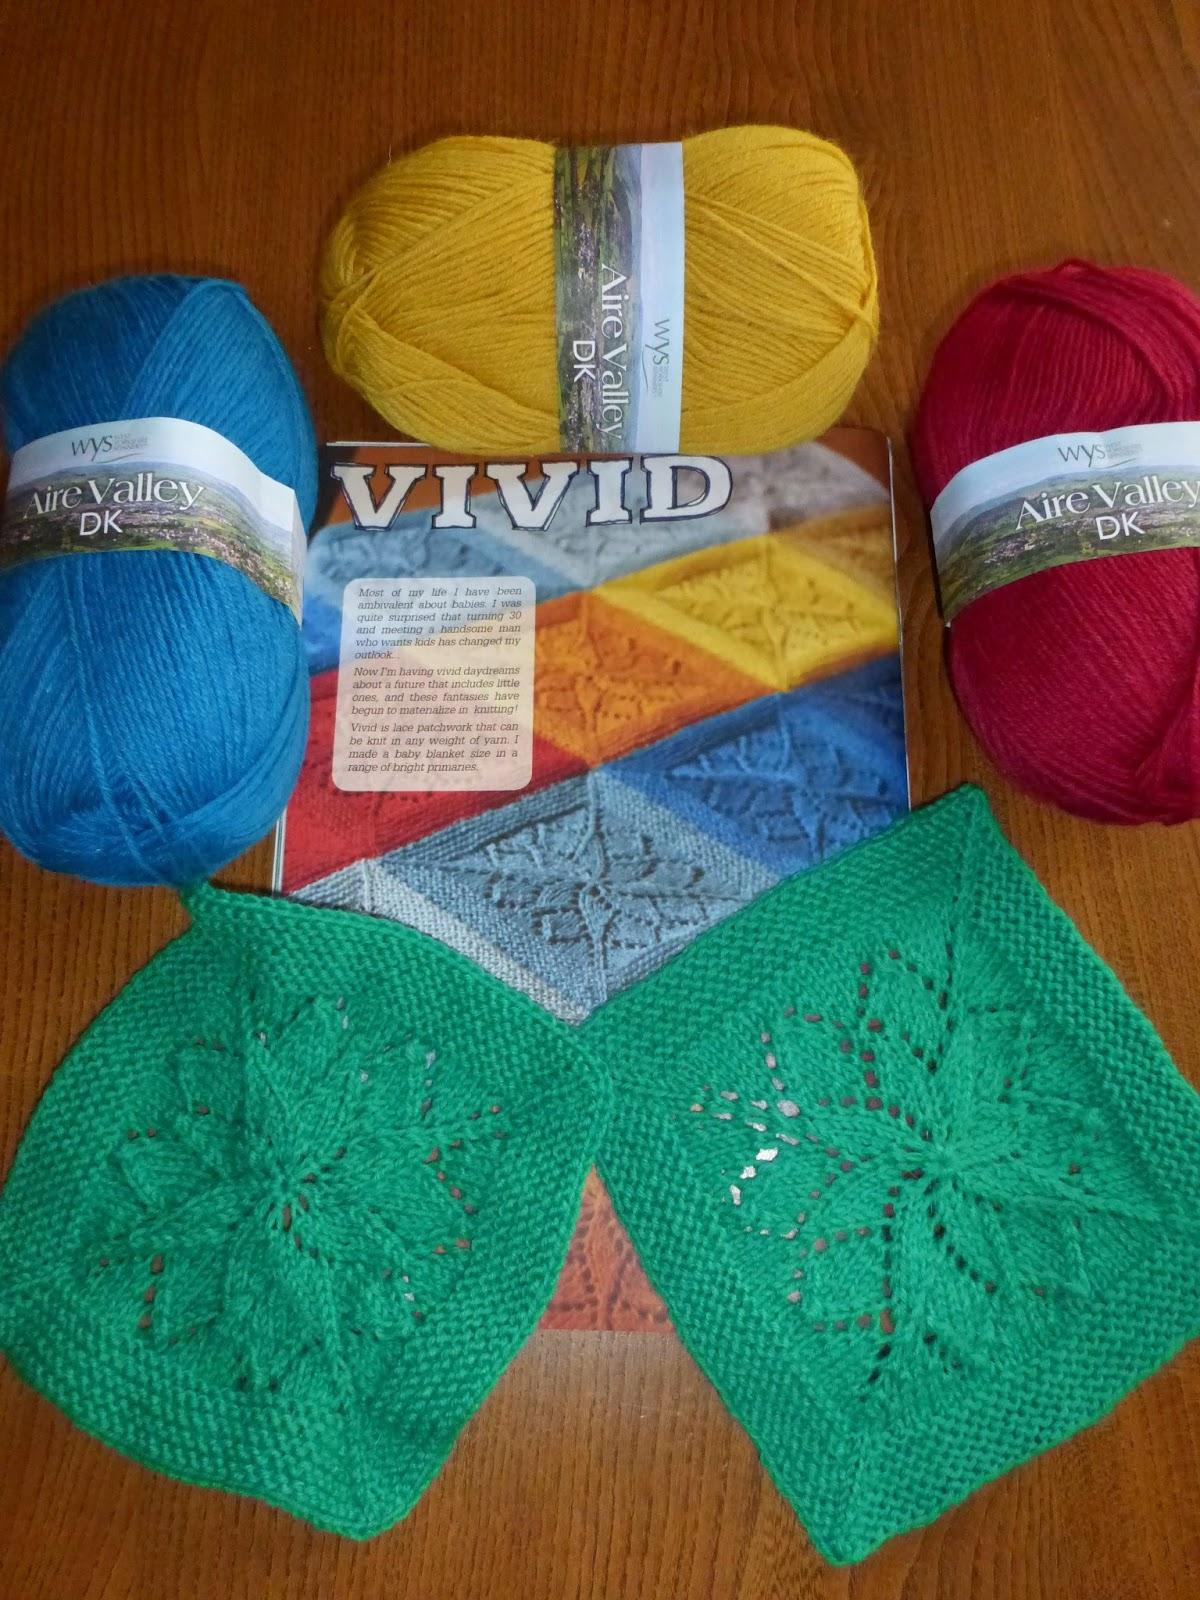 tin can knits vivid blanket for new baby in west yorkshire spinners aire valley bright colours